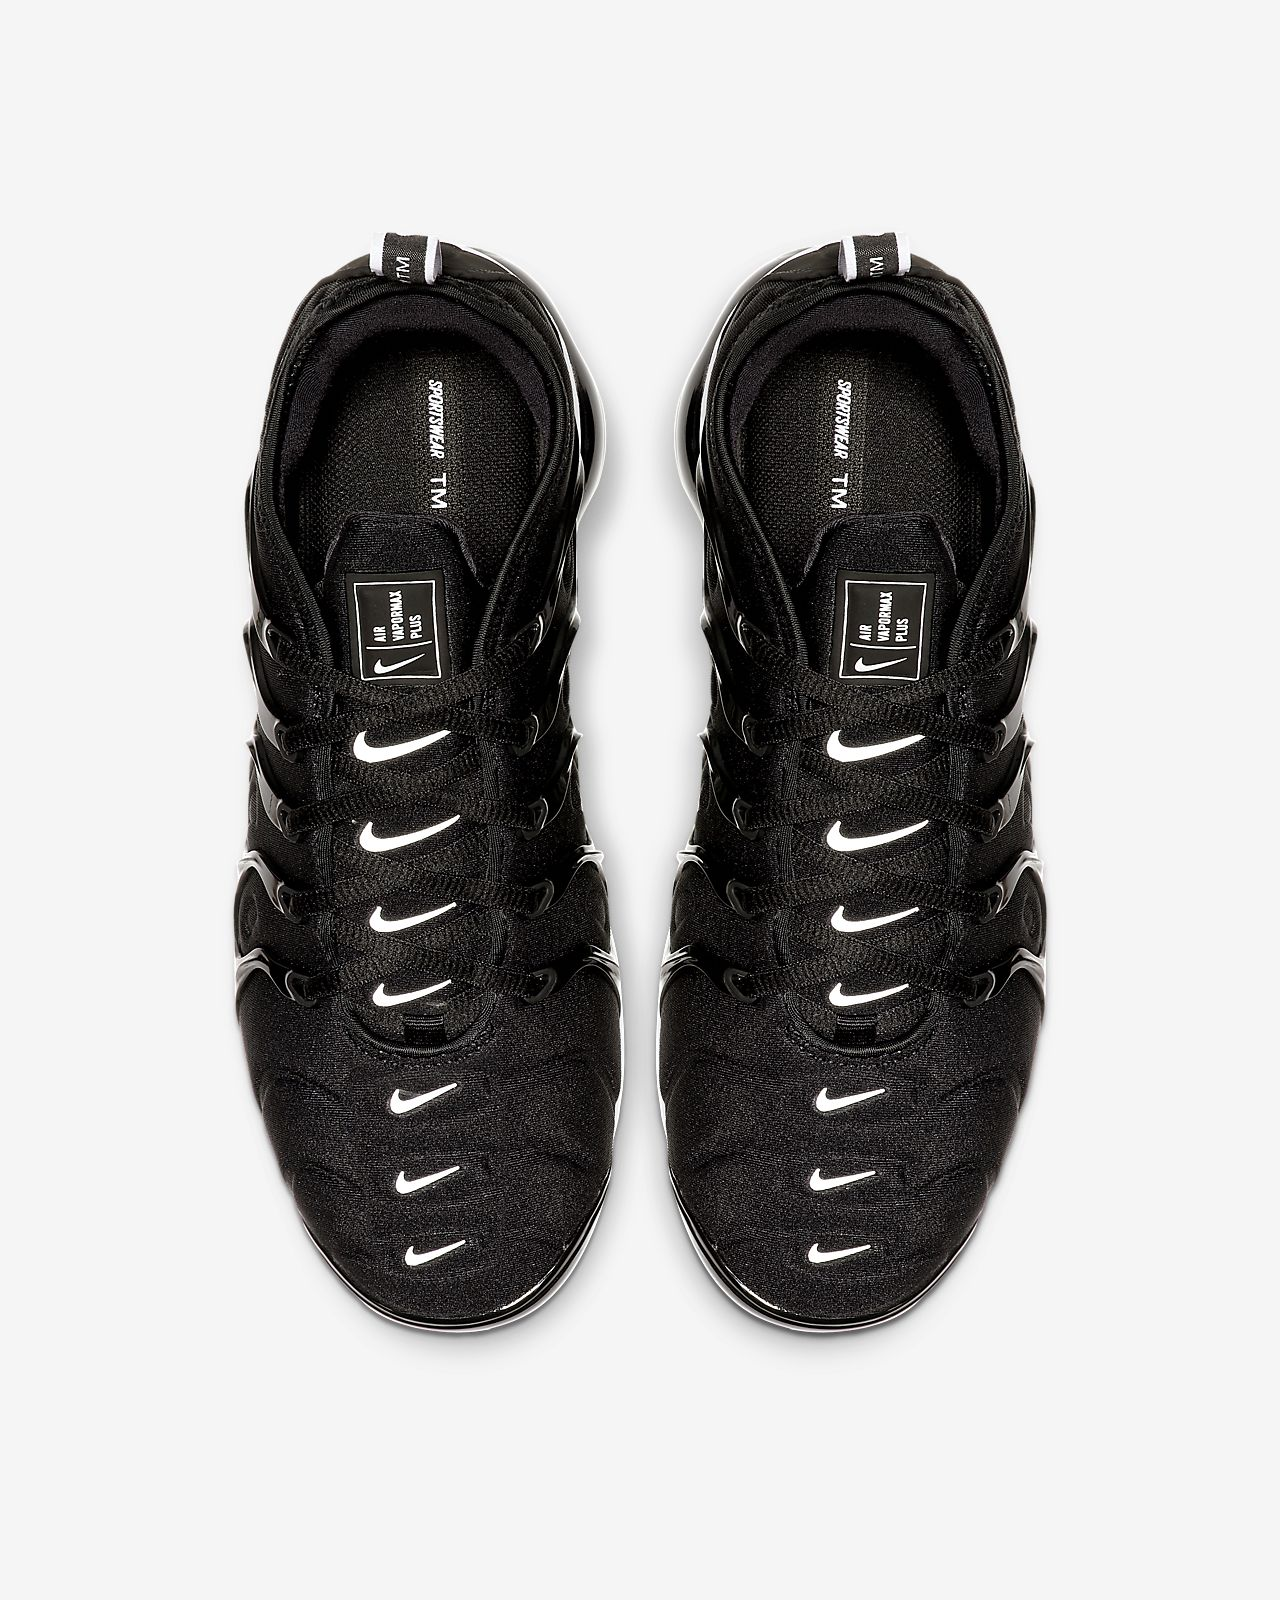 new arrival faa93 def38 Low Resolution Chaussure Nike Air VaporMax Plus pour Homme Chaussure Nike  Air VaporMax Plus pour Homme